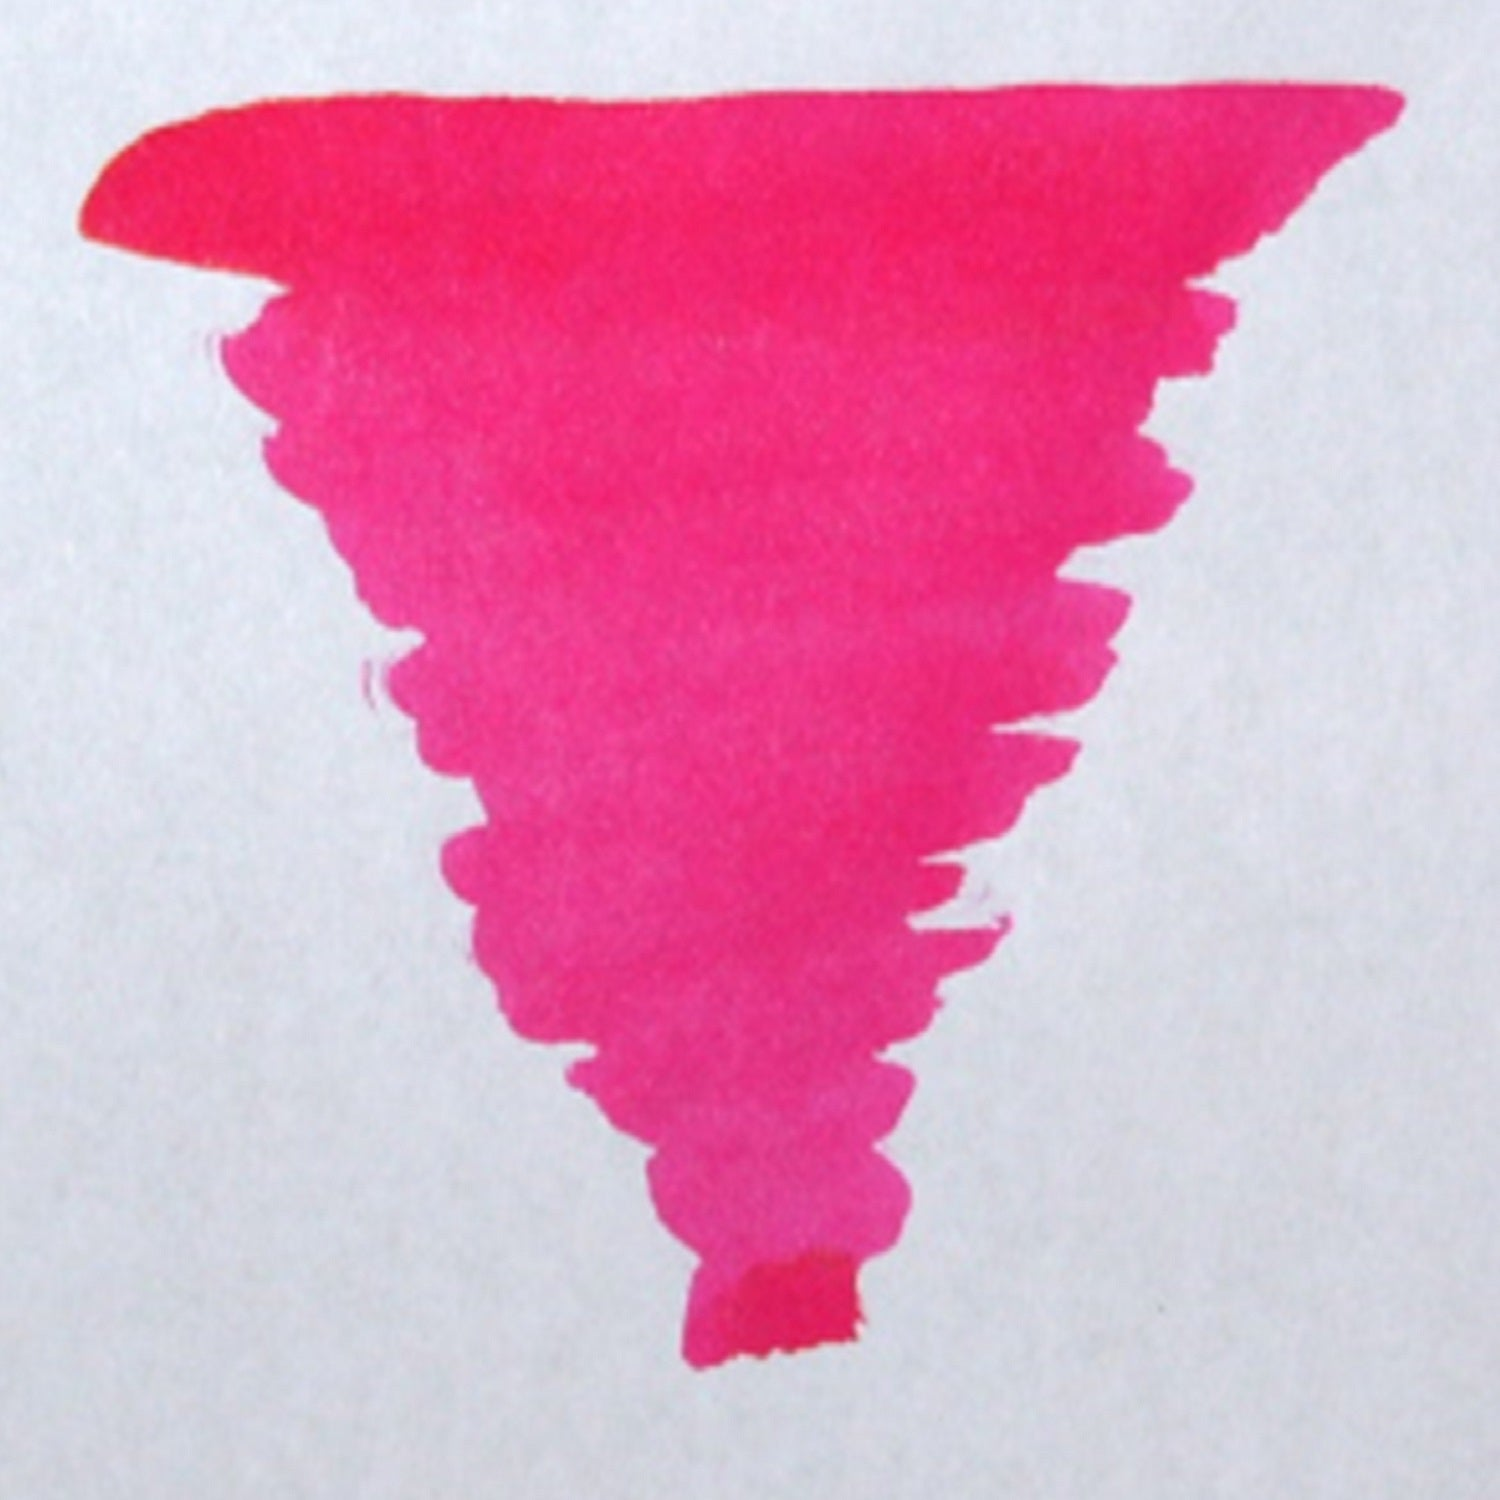 DIAMINE Ink 80ml Bottle PINK SHADES